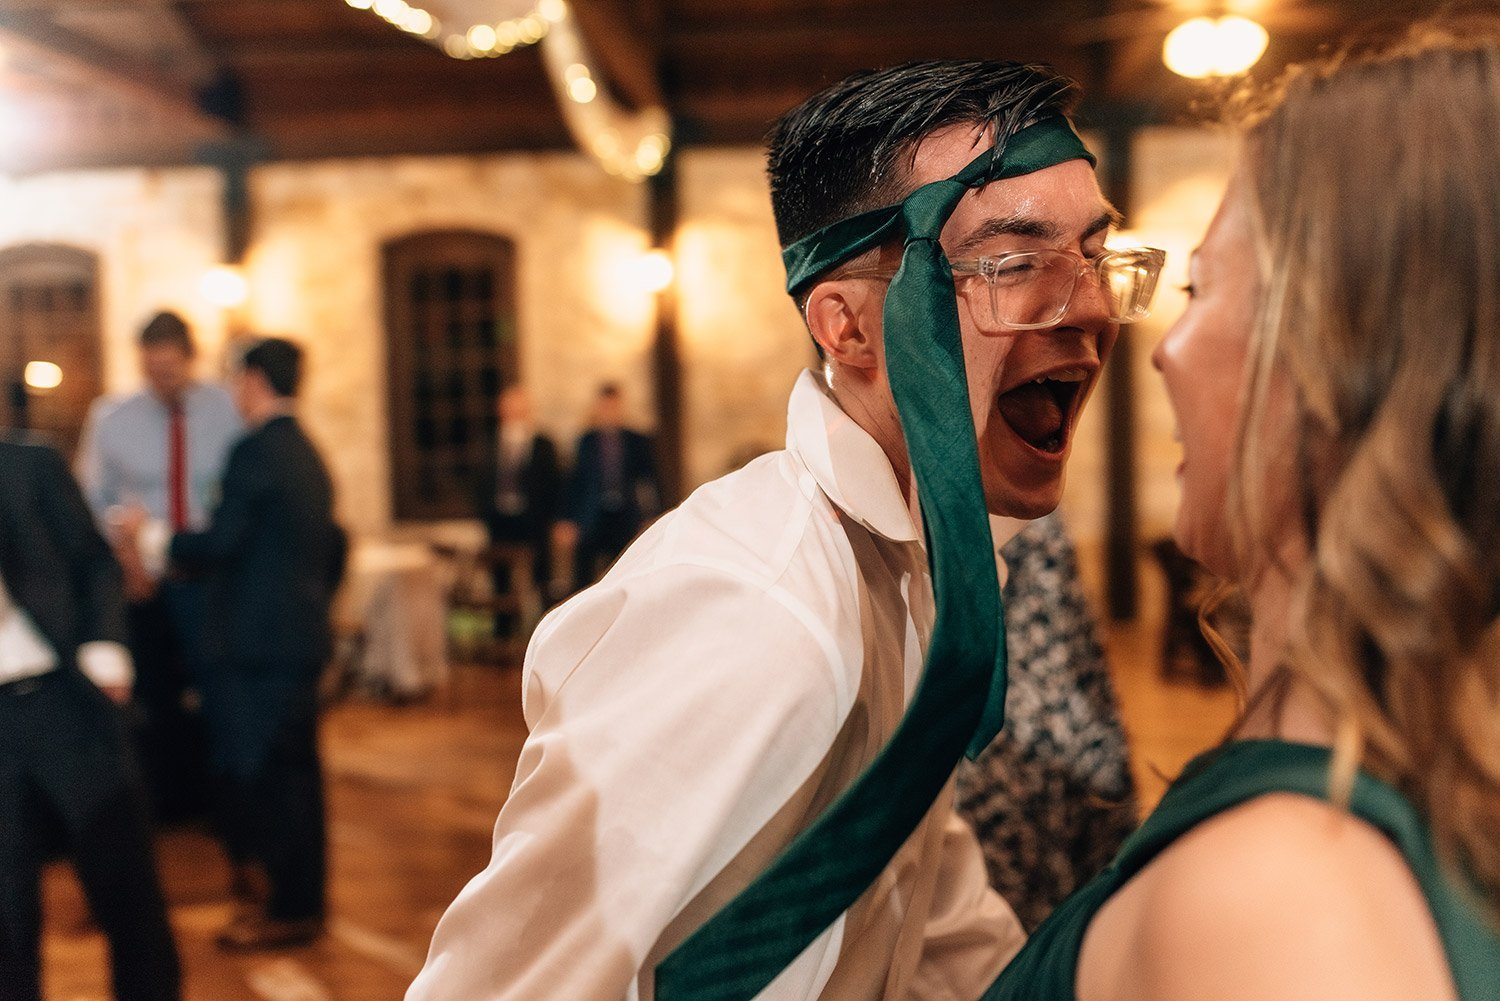 wedding guest with tie on his head